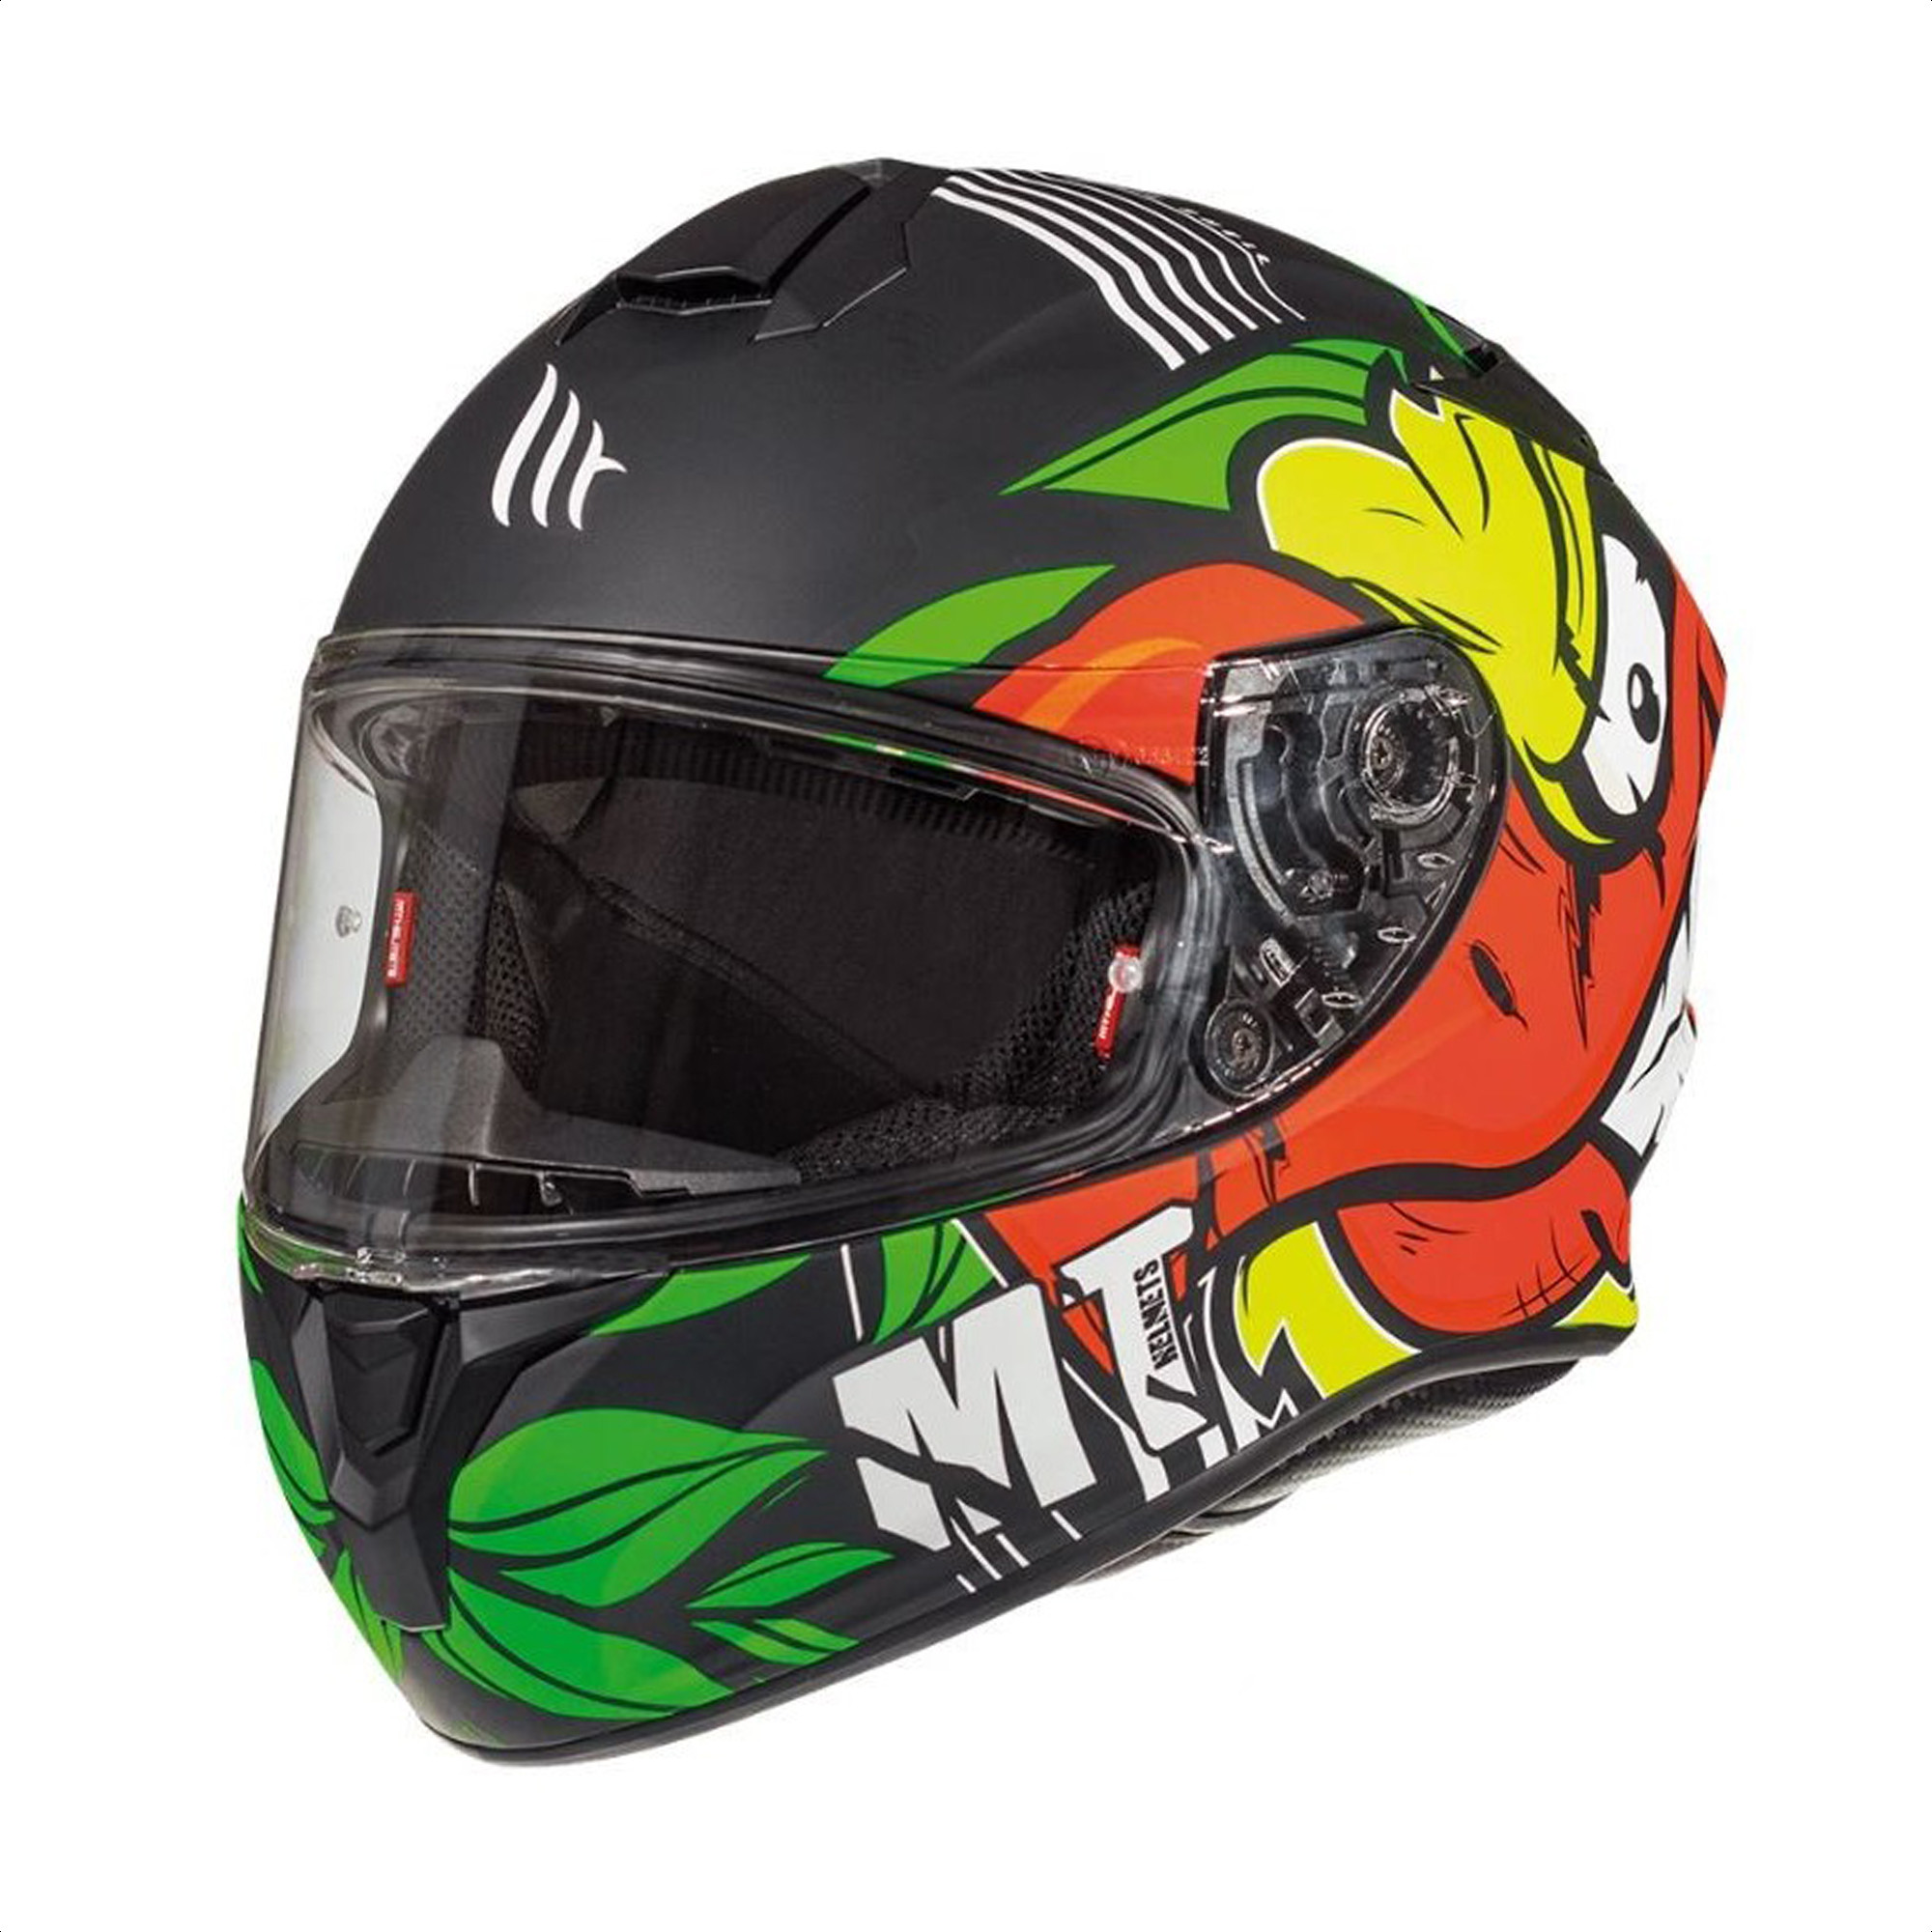 Casco Integral Mt Thunder Truck A2 Amarillo Mate